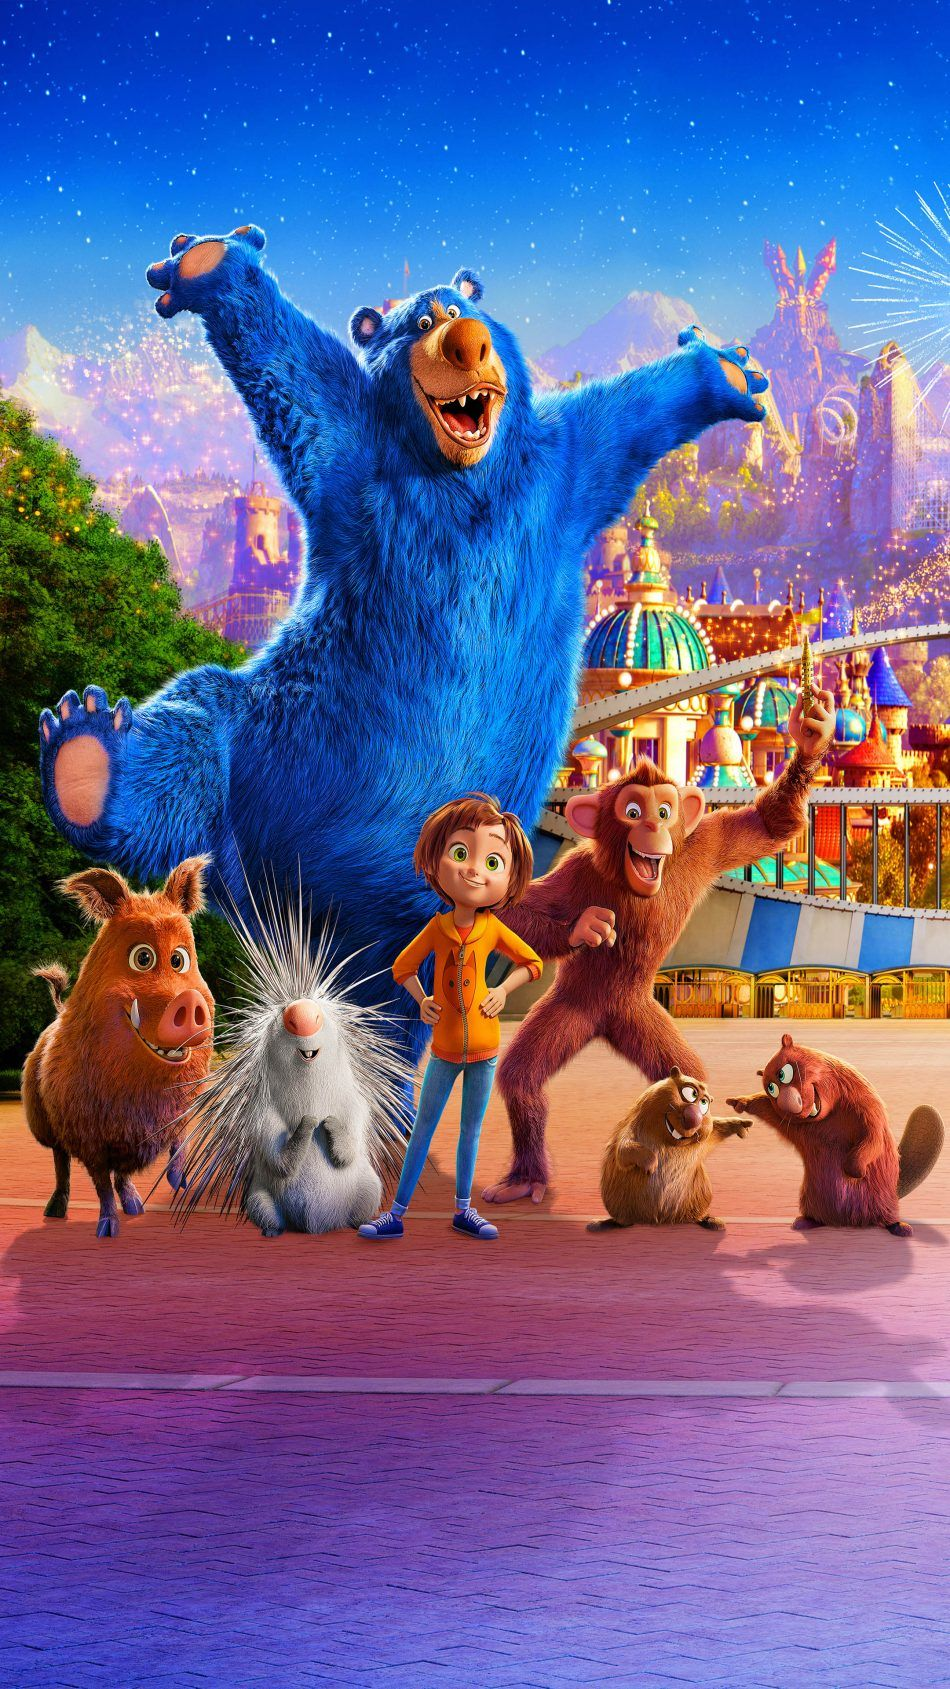 Wonder Park Animation Movie 2019 Animation, Cartoon